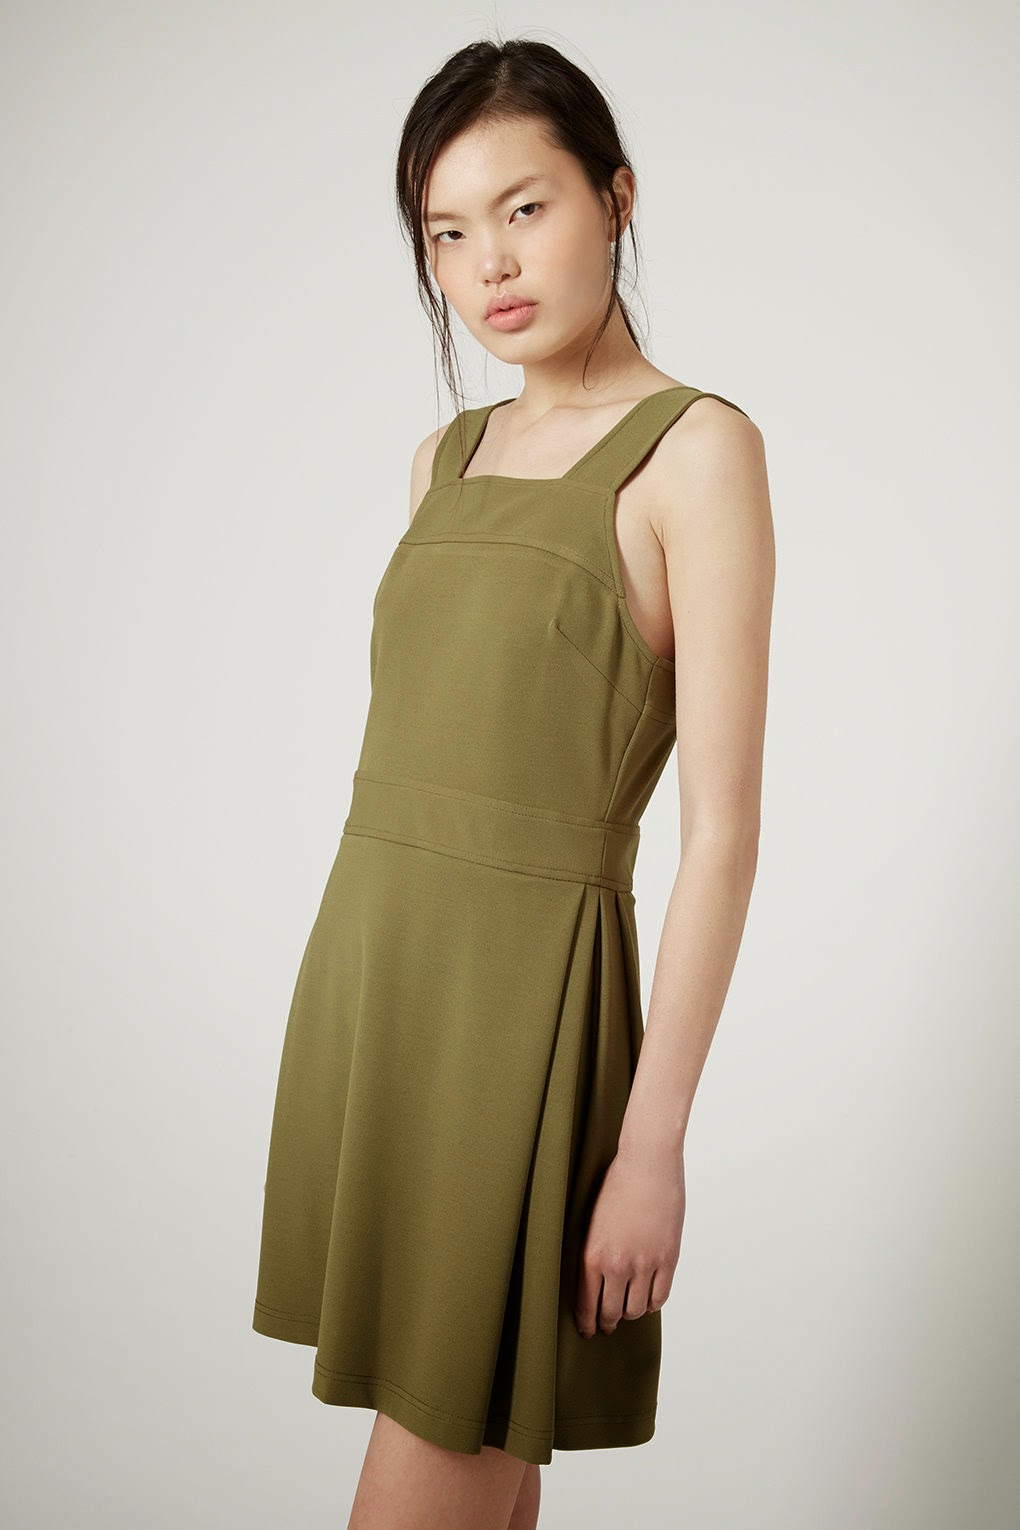 khaki green pinafore dress